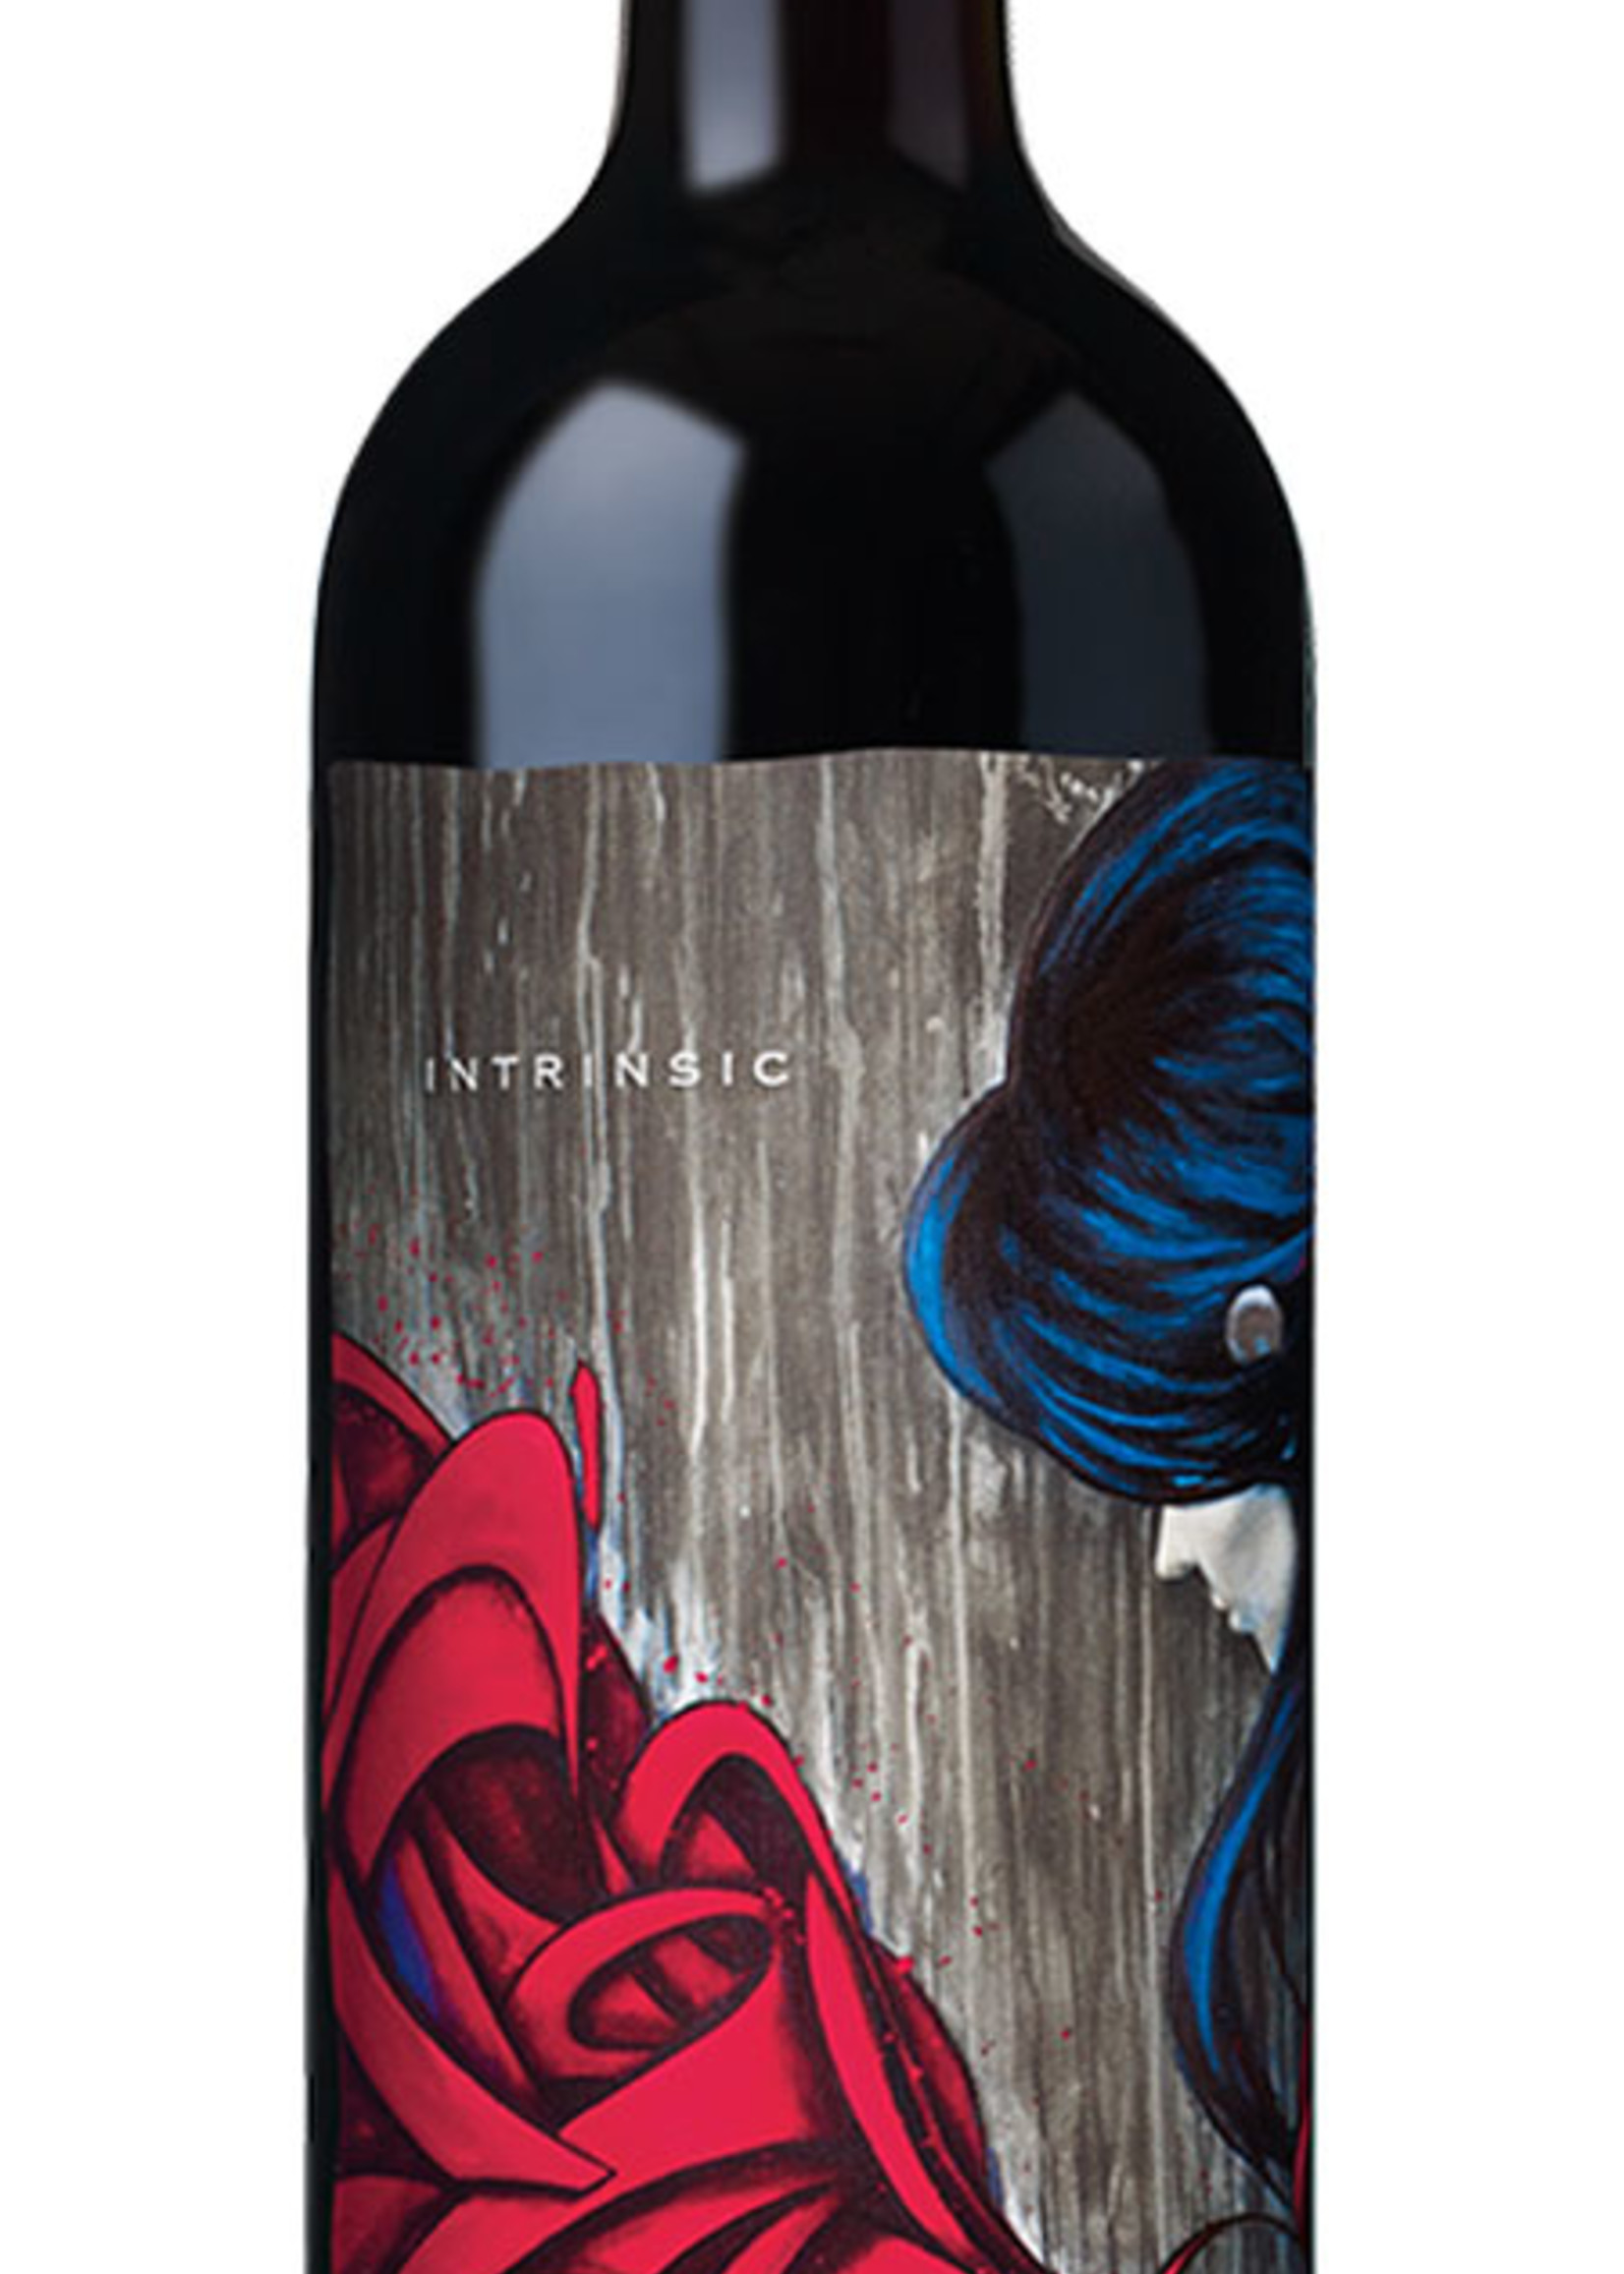 Intrinsic Red Blend Columbia Valley Washington